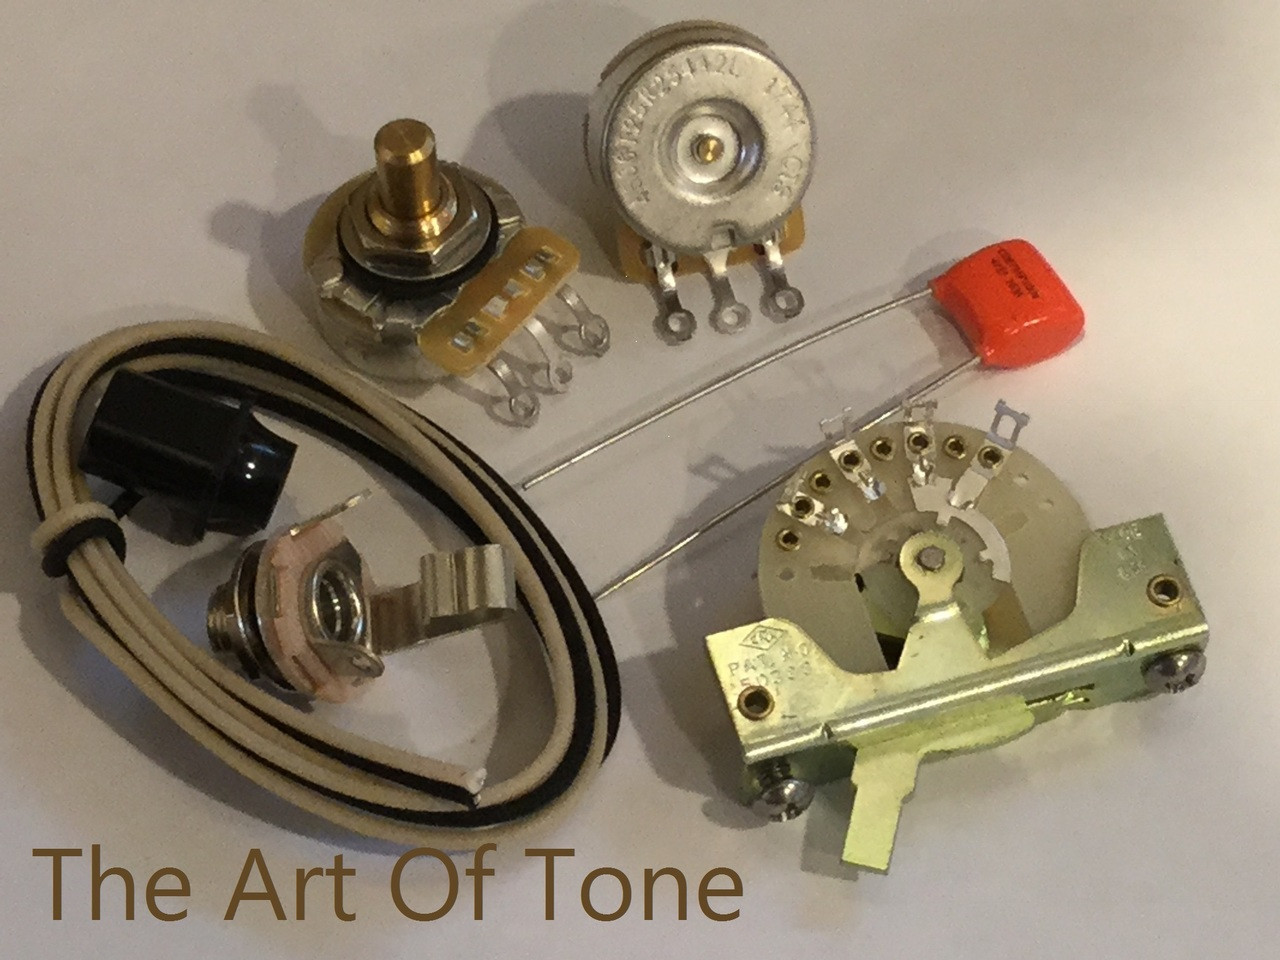 basic wiring kit for telecaster® guitars  deluxe taot fender telecaster wiring kit the art of tone